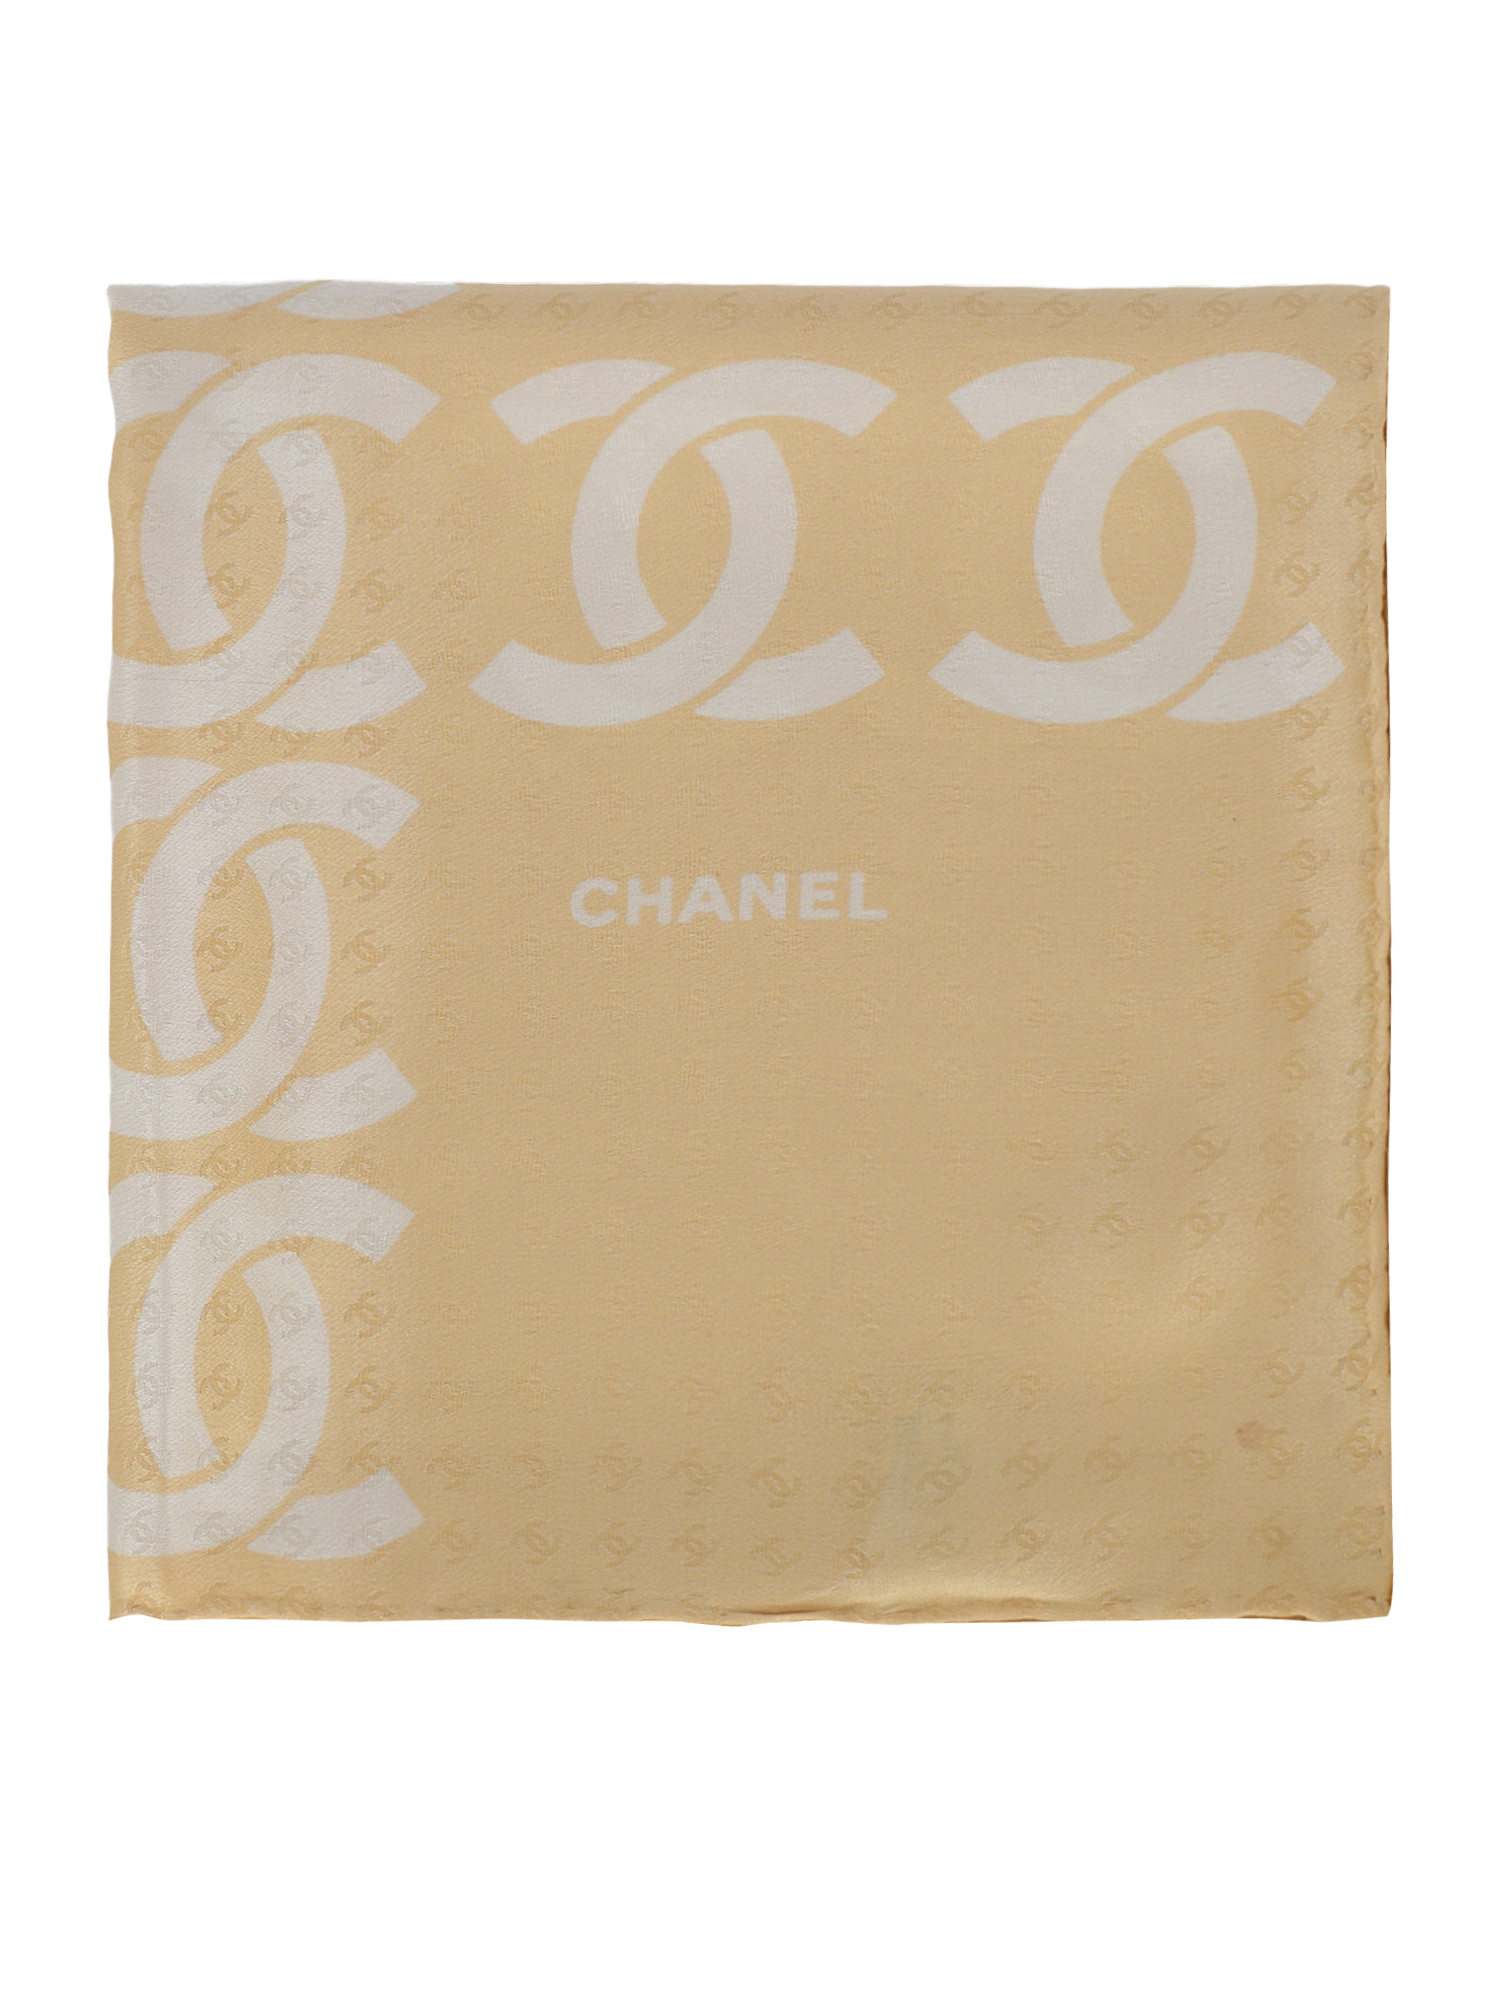 Pre-owned Chanel Clothing In Beige, White